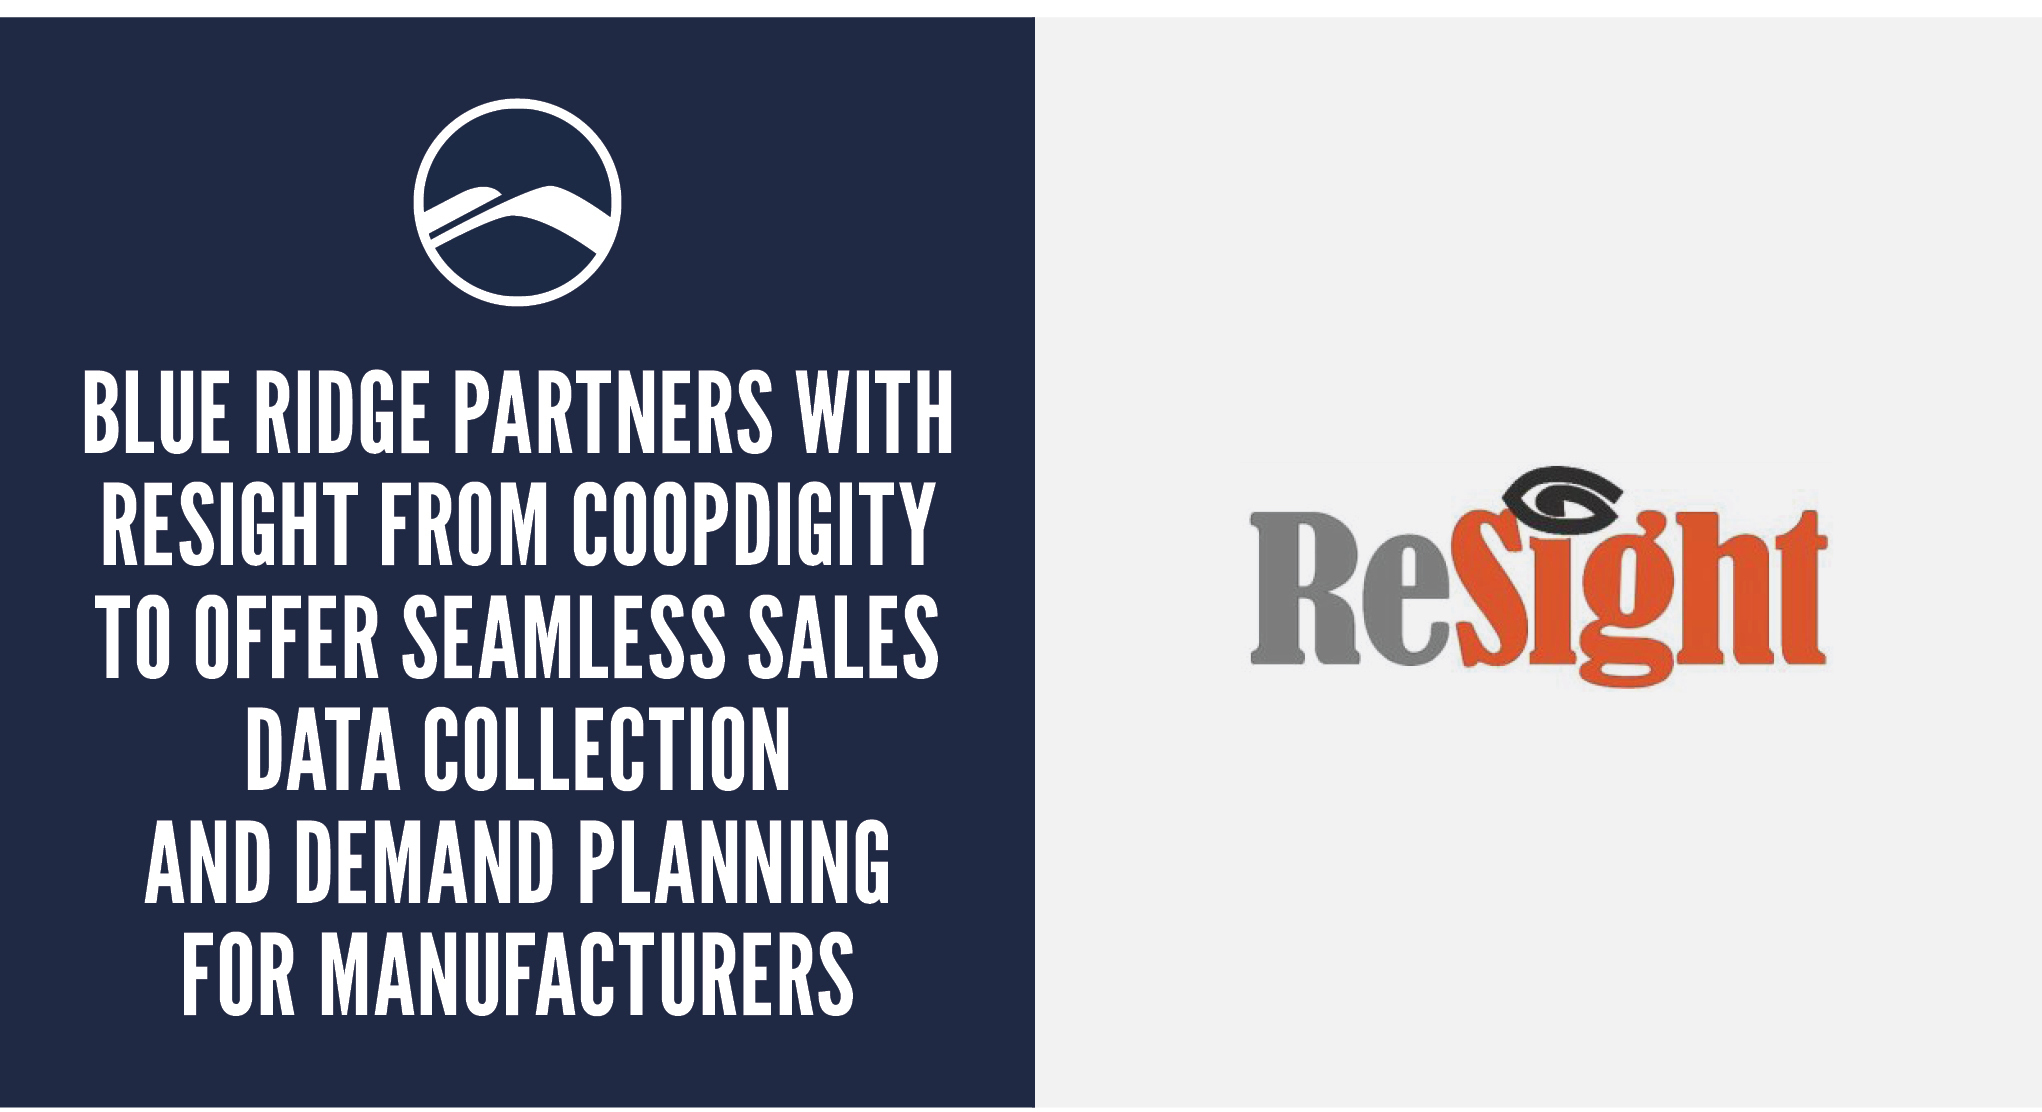 resight-data-collection-demand-planning-for-manufacturers